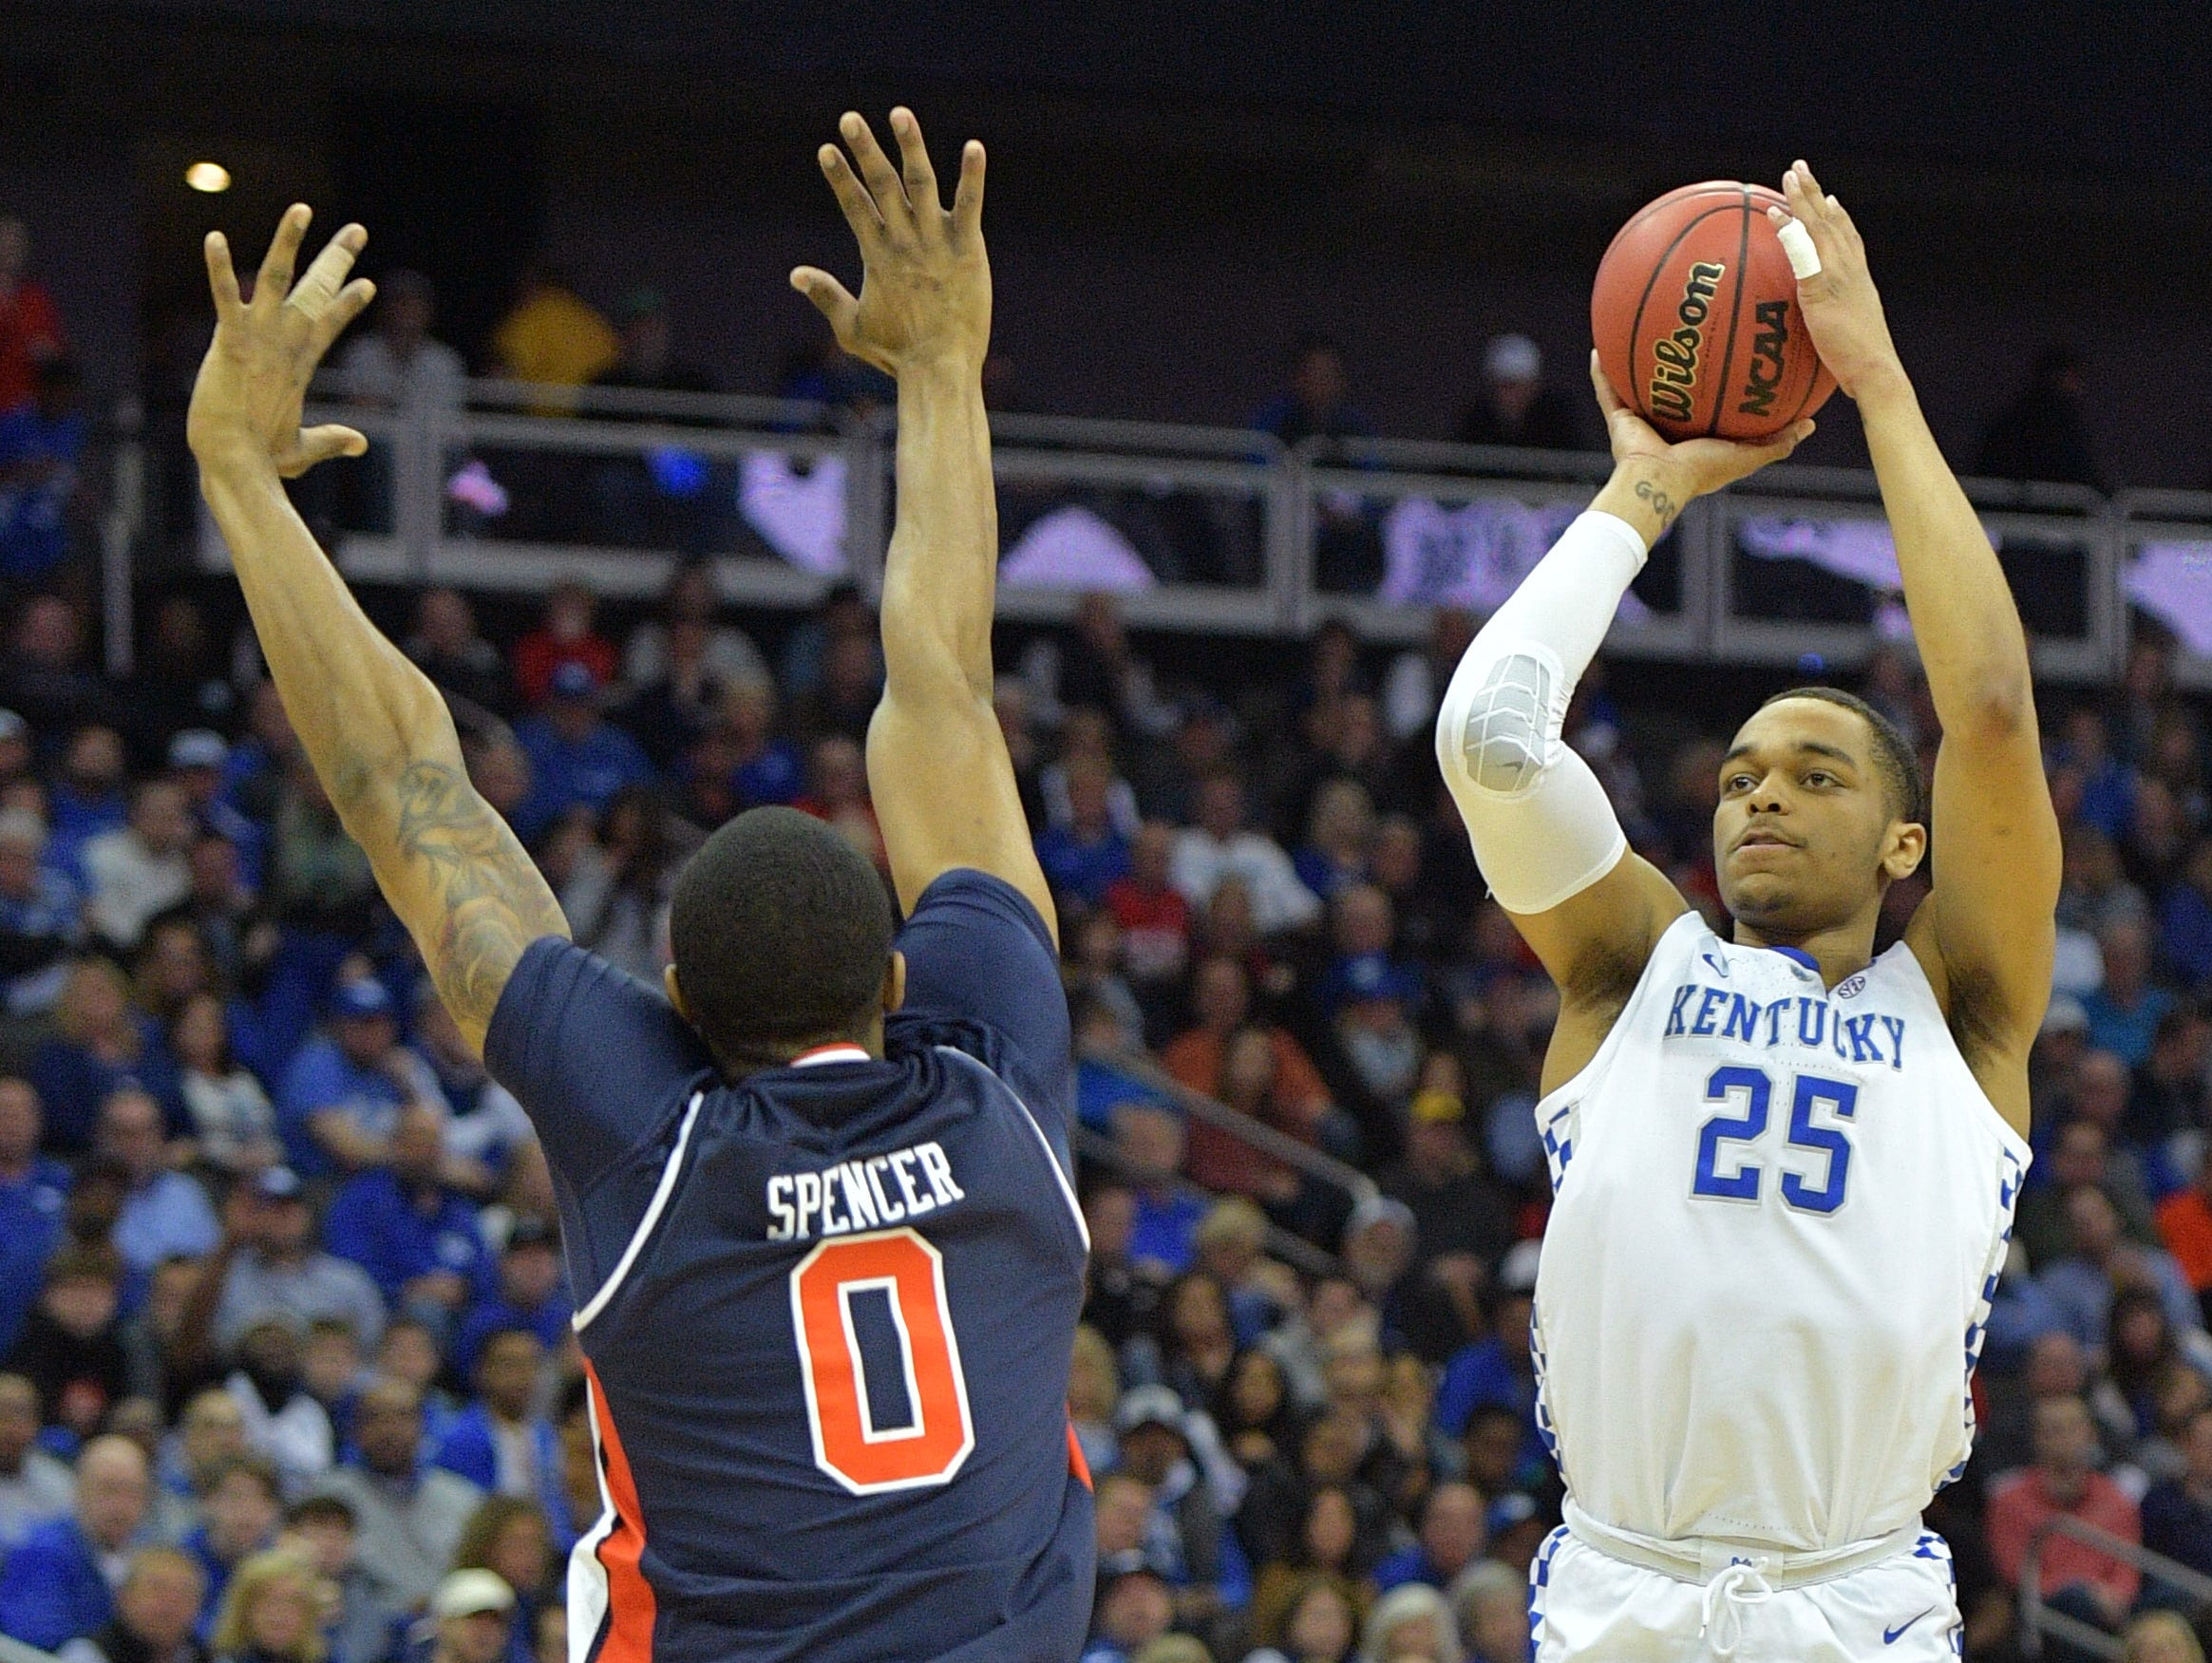 Mar 31, 2019; Kansas City, MO, United States; Kentucky Wildcats forward PJ Washington (25) shoots over Auburn Tigers forward Horace Spencer (0) during the first half in the championship game of the midwest regional of the 2019 NCAA Tournament at Sprint Center. Mandatory Credit: Denny Medley-USA TODAY Sports